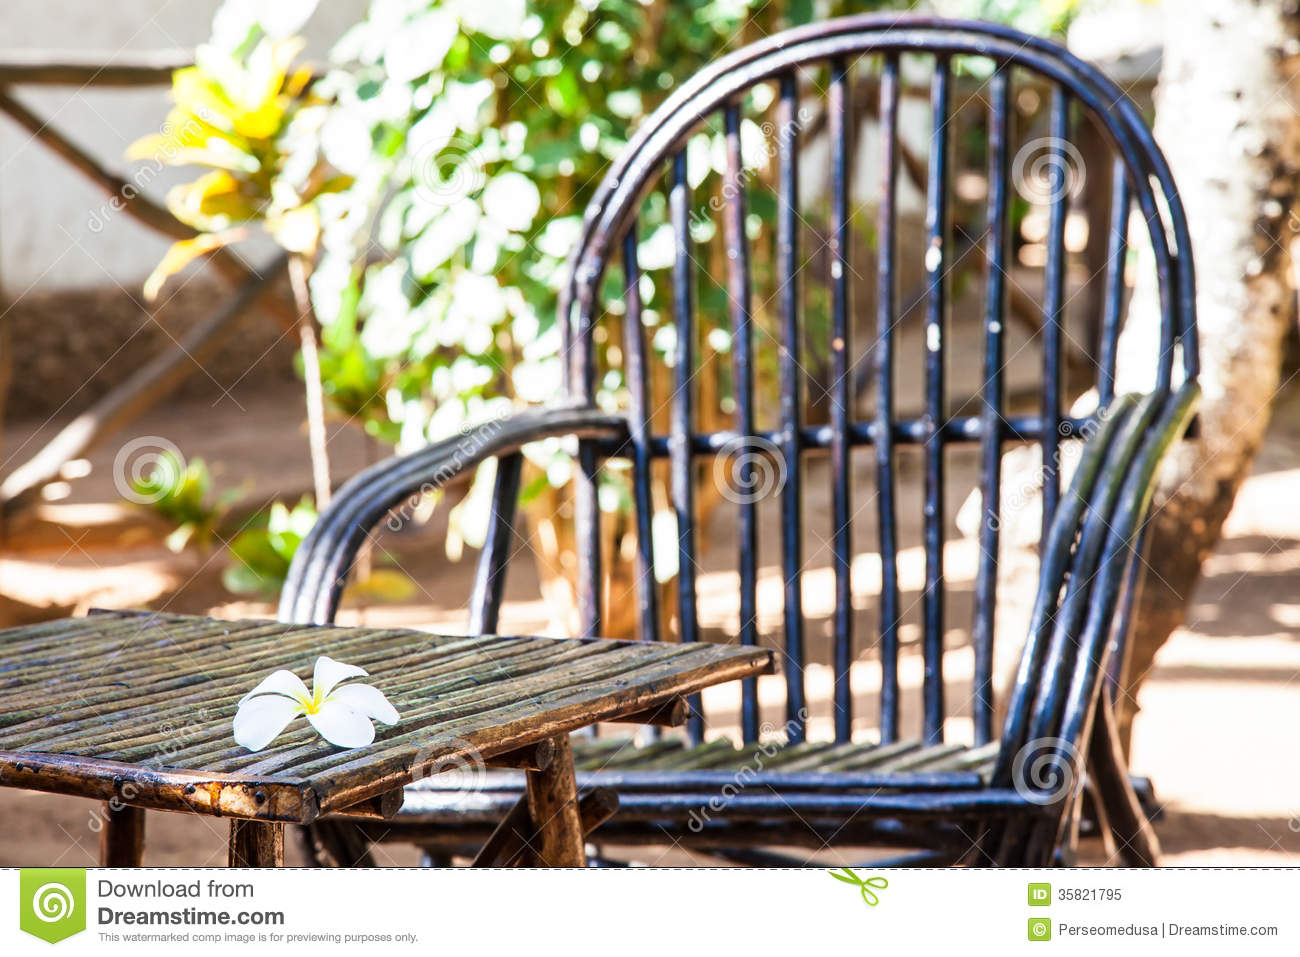 Garden furniture royalty free stock photo image 35821795 for Outdoor furniture kenya